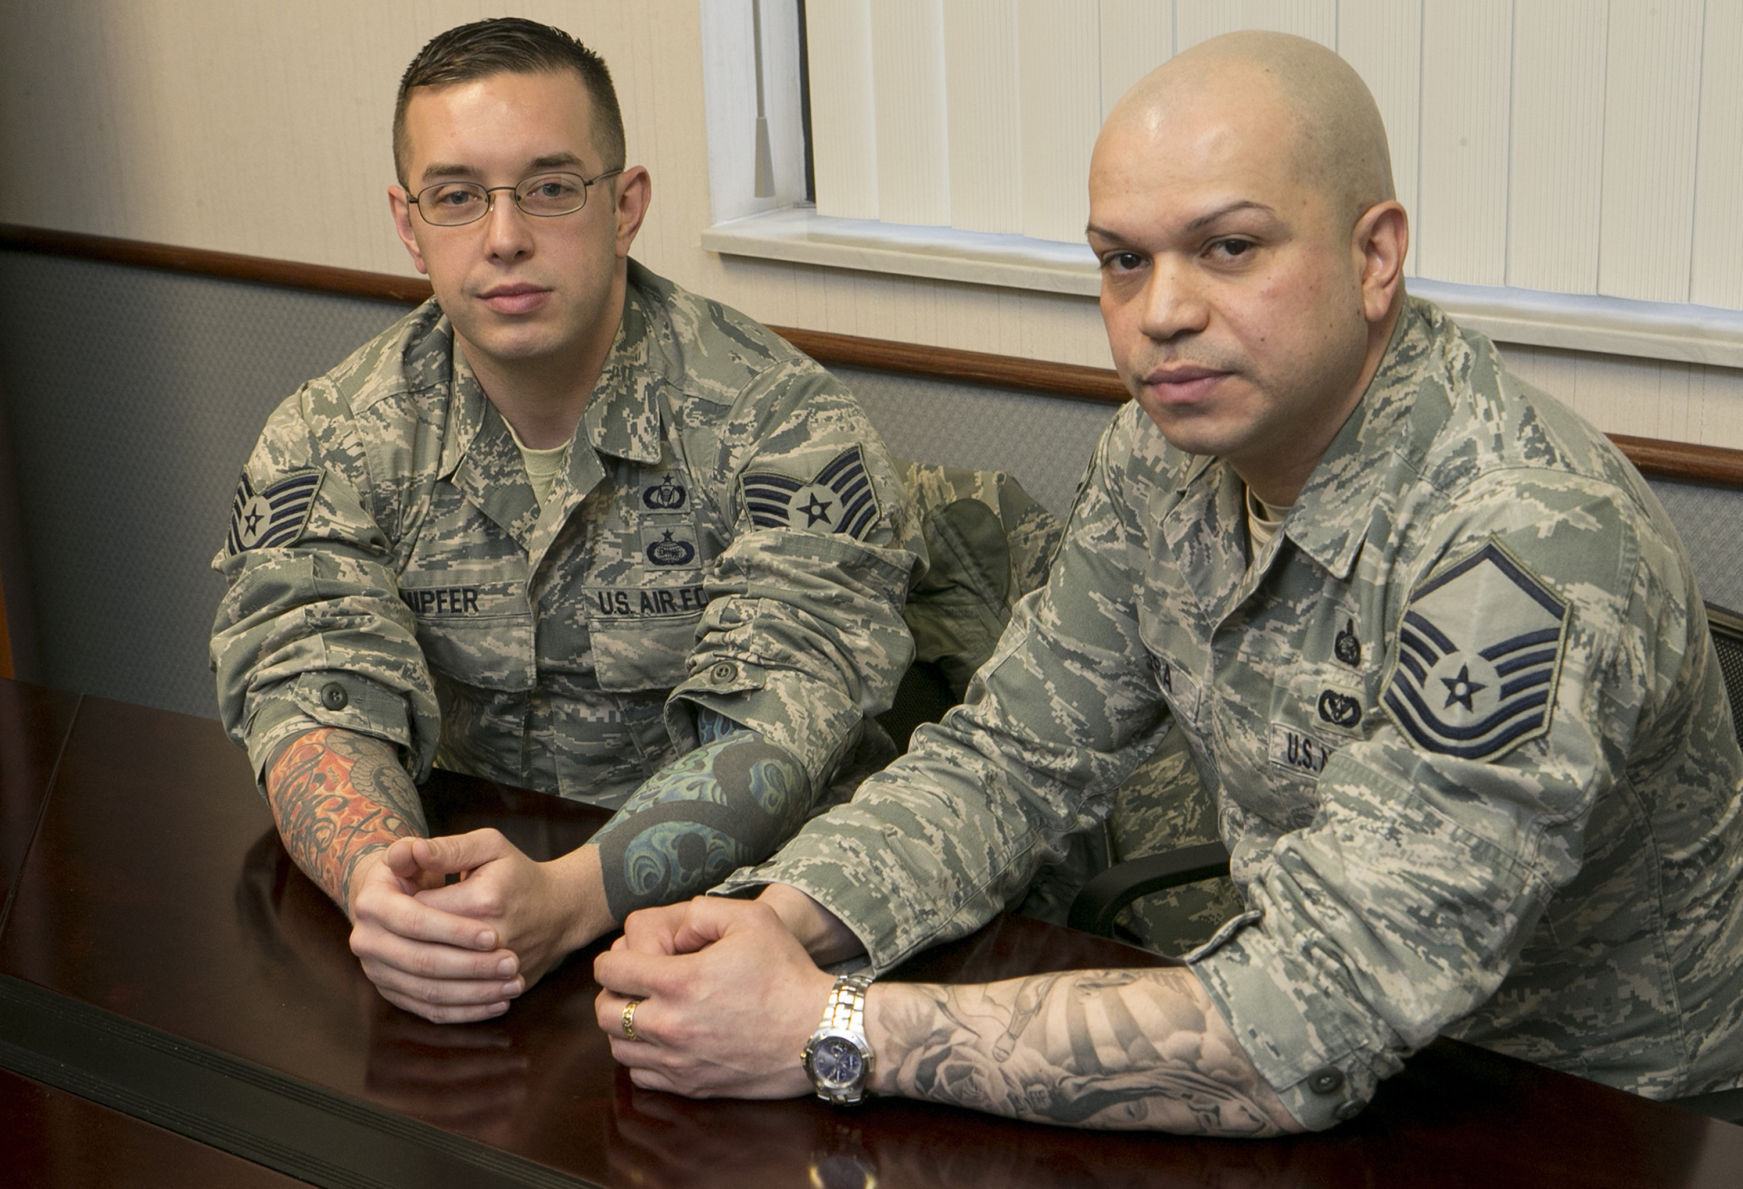 Air Force Relaxes Tattoo Policy, Allows Sleeves |